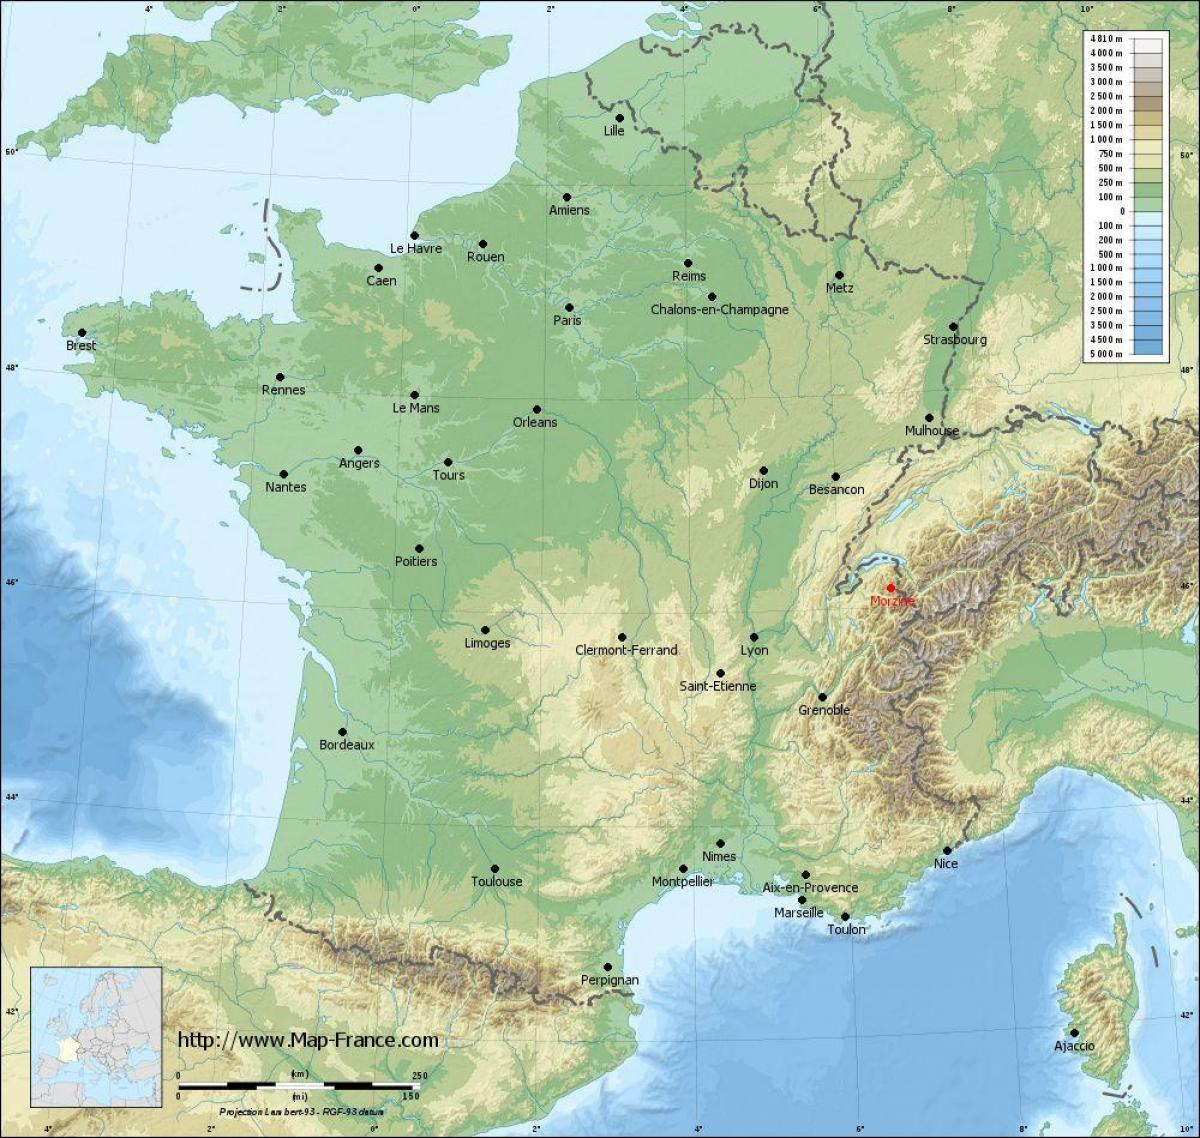 map of France relief